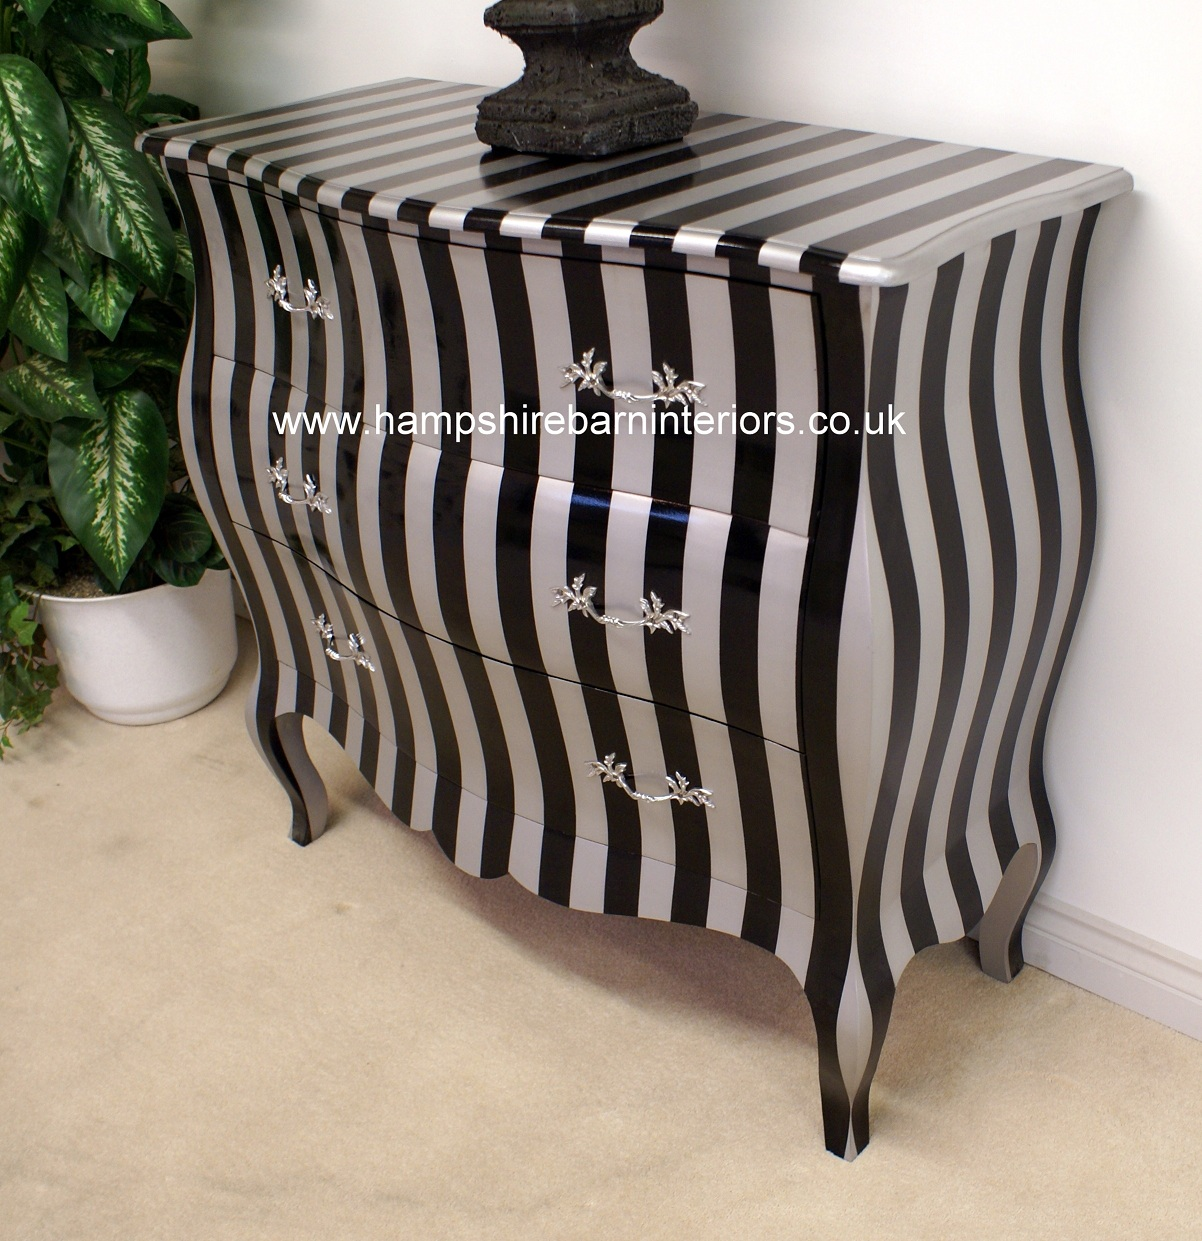 throne office chair kelly posture a black & silver stripe bombe chest of 3 drawers | hampshire barn interiors